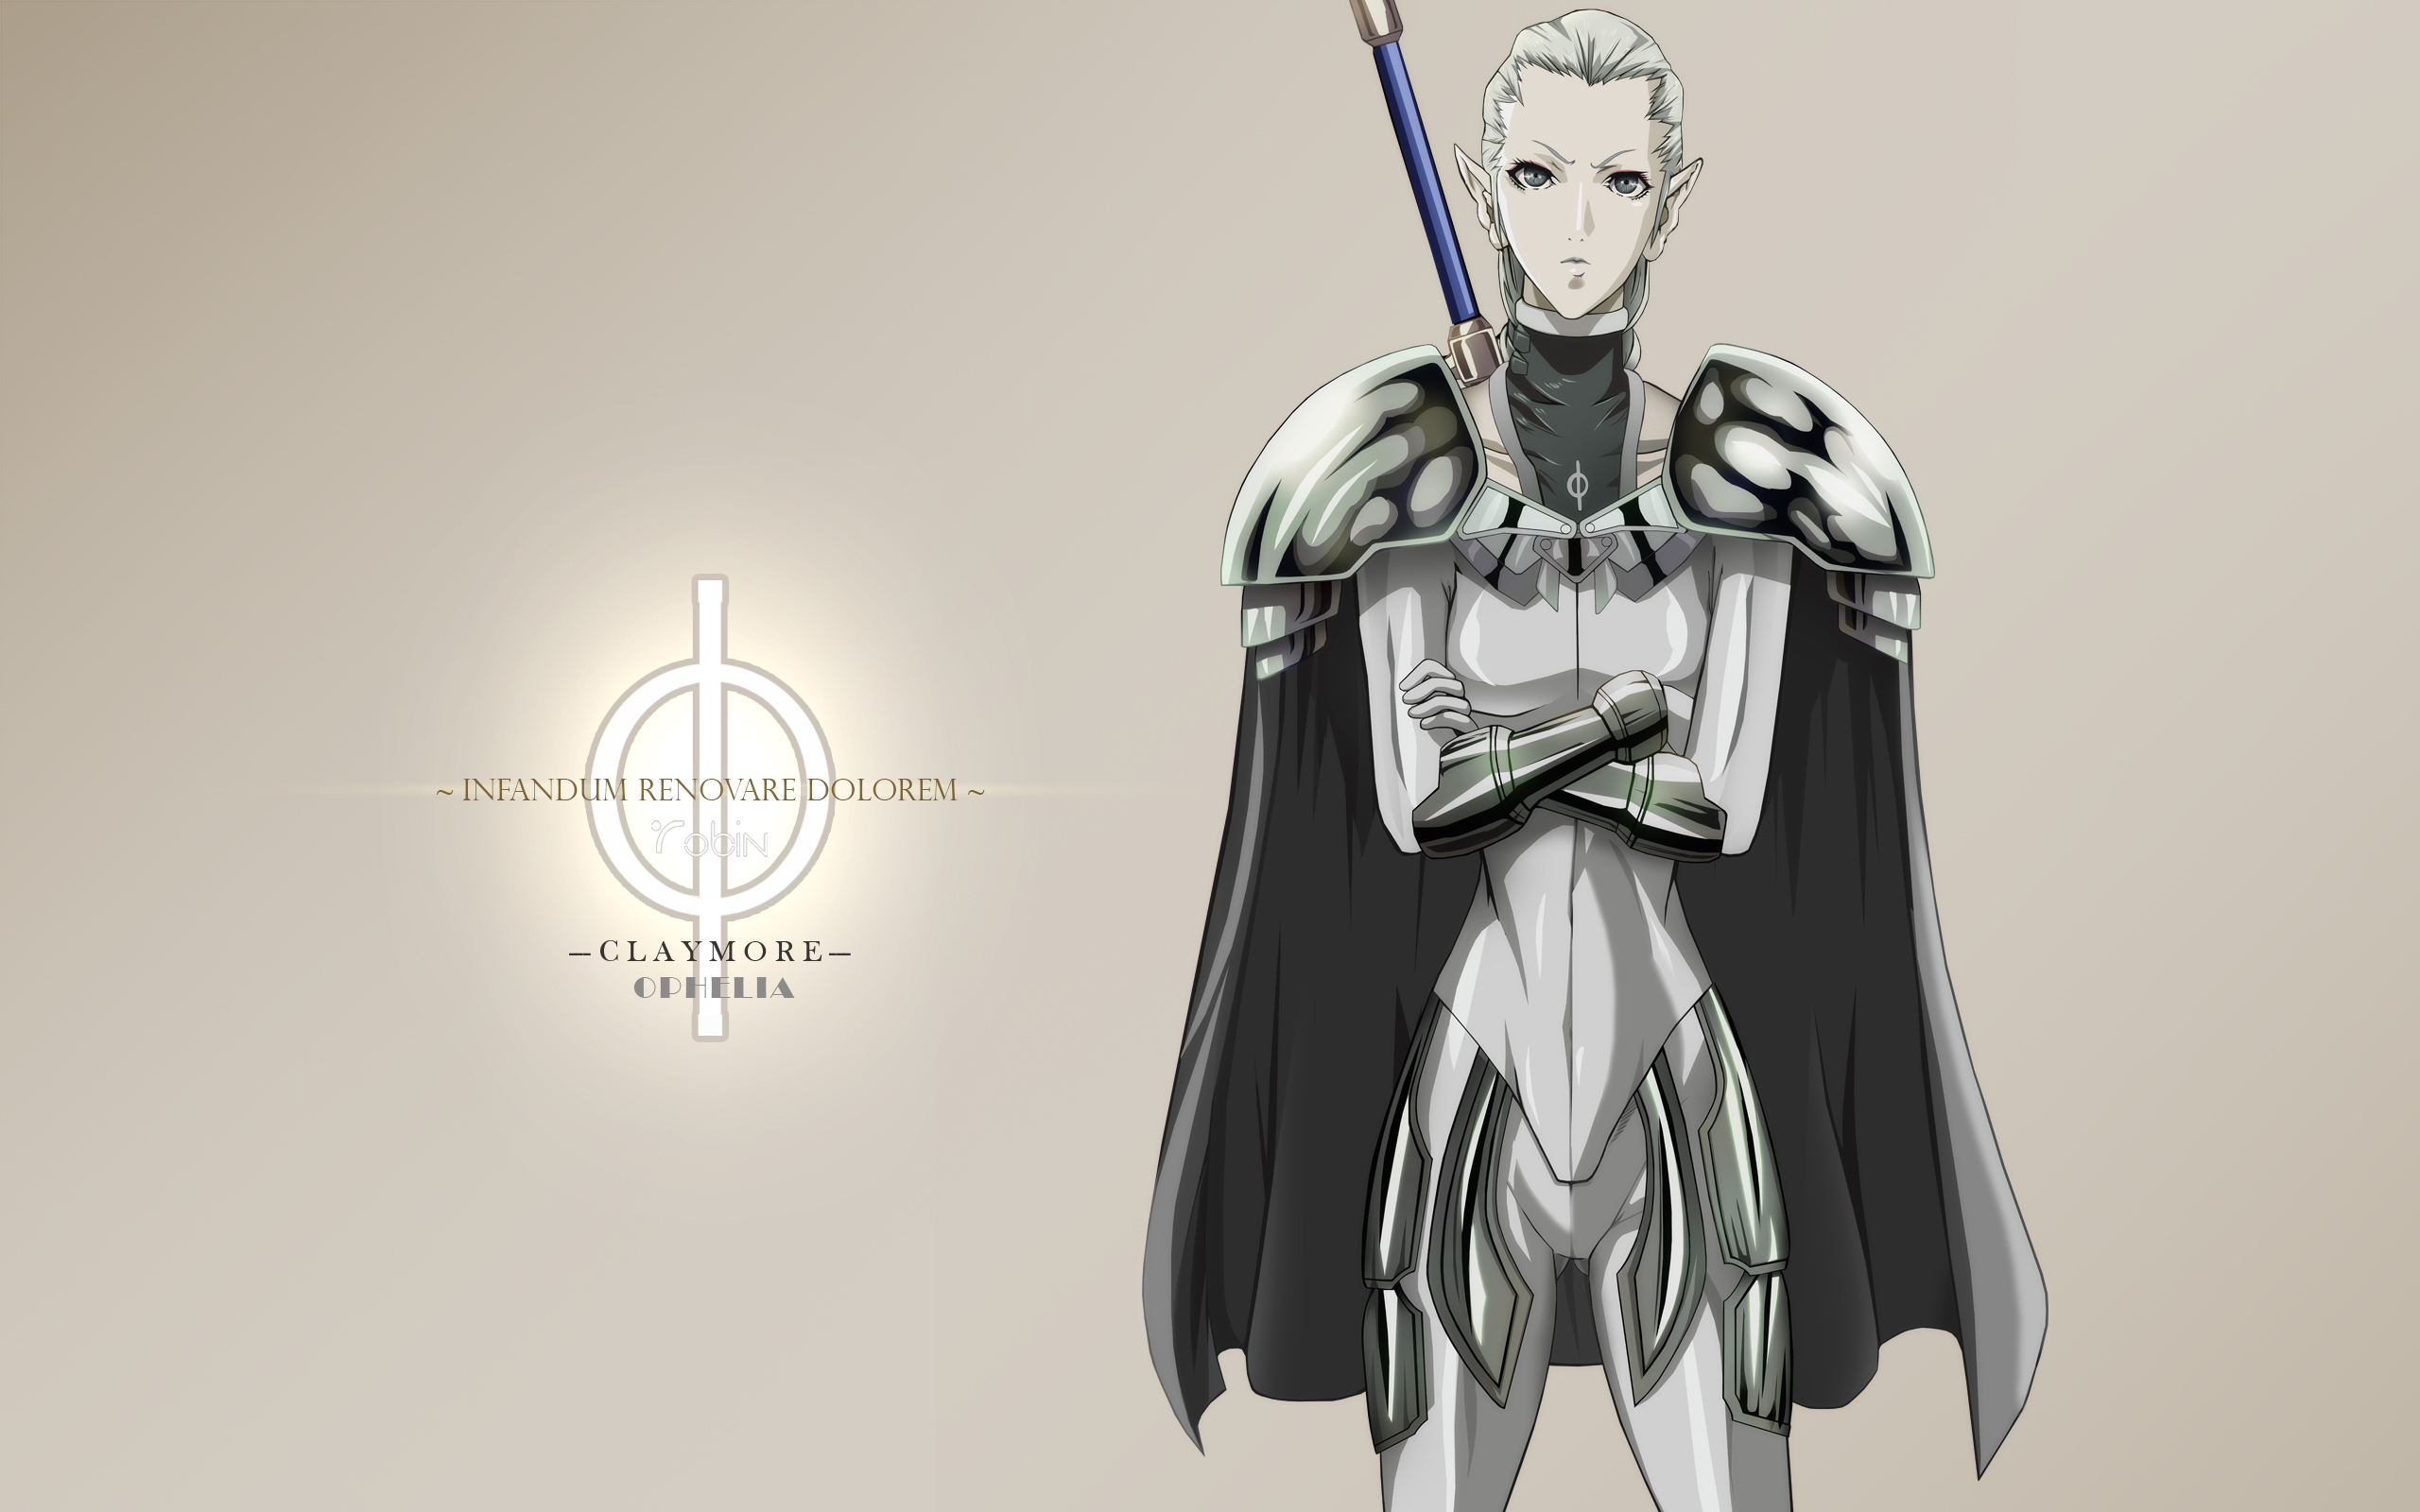 ... claymore cl...